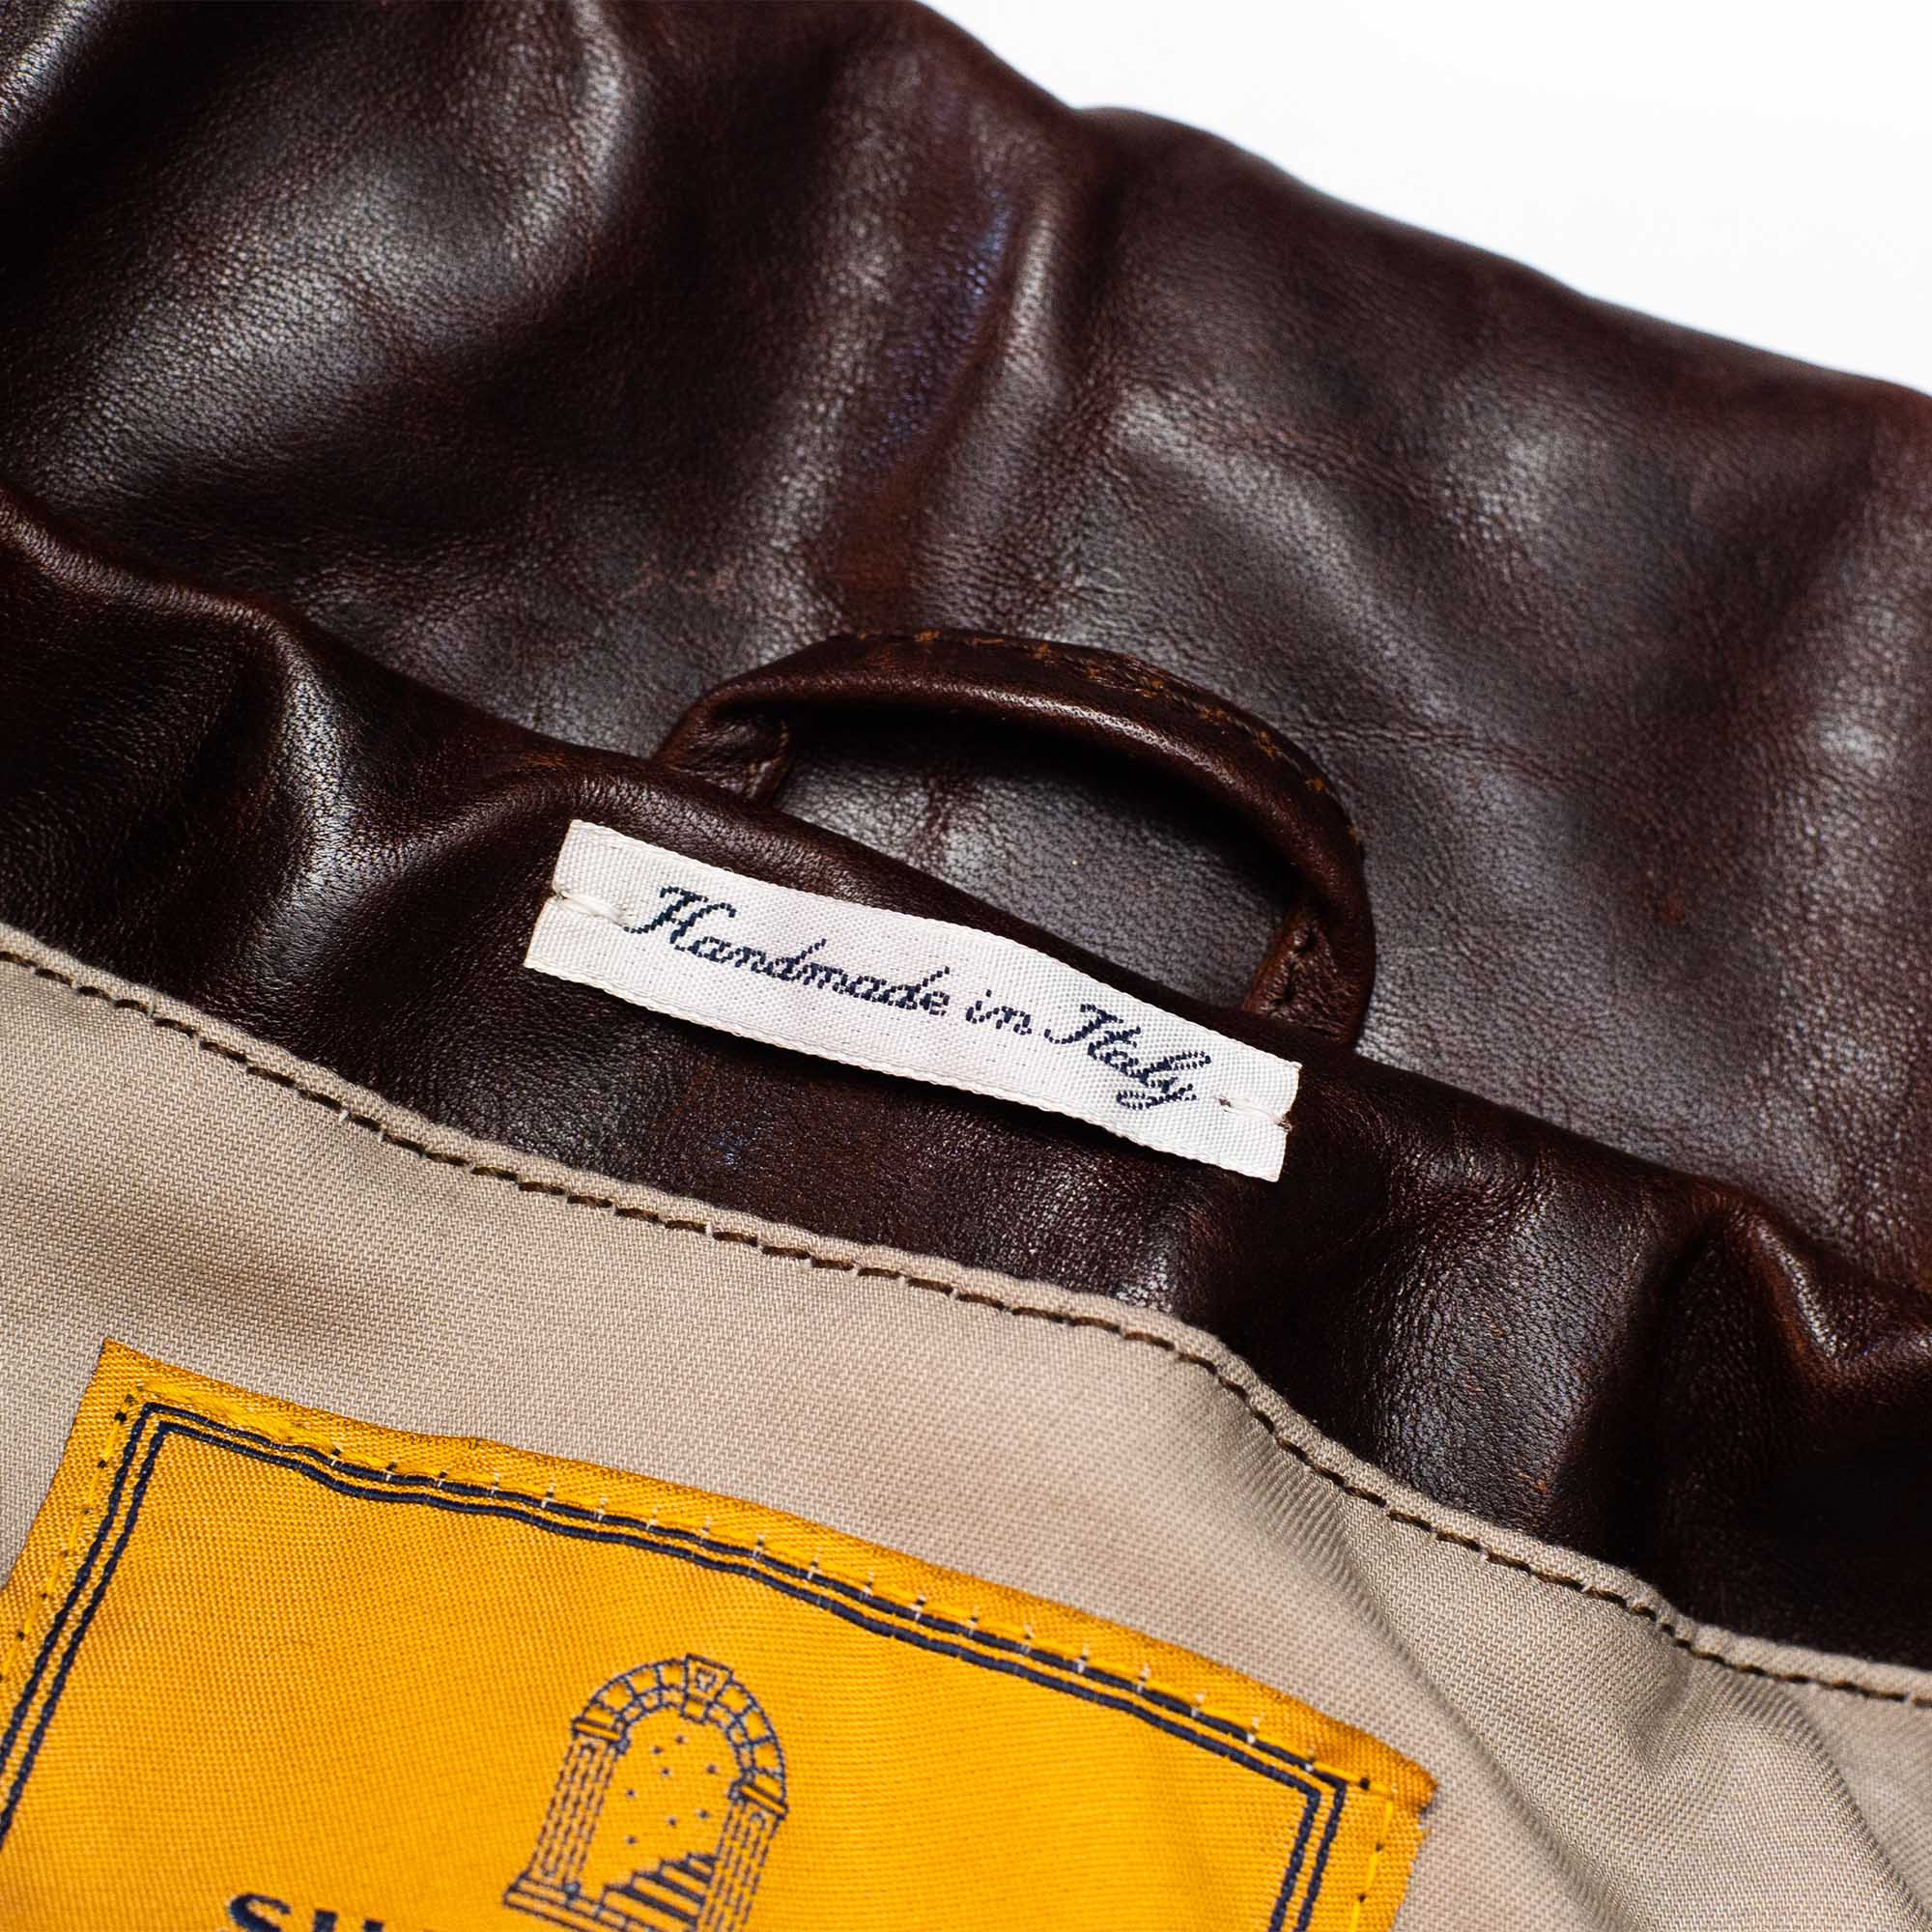 shangri-la-heritage-varenne-whiskey-horsehide-leather-jacket-still-life-collar